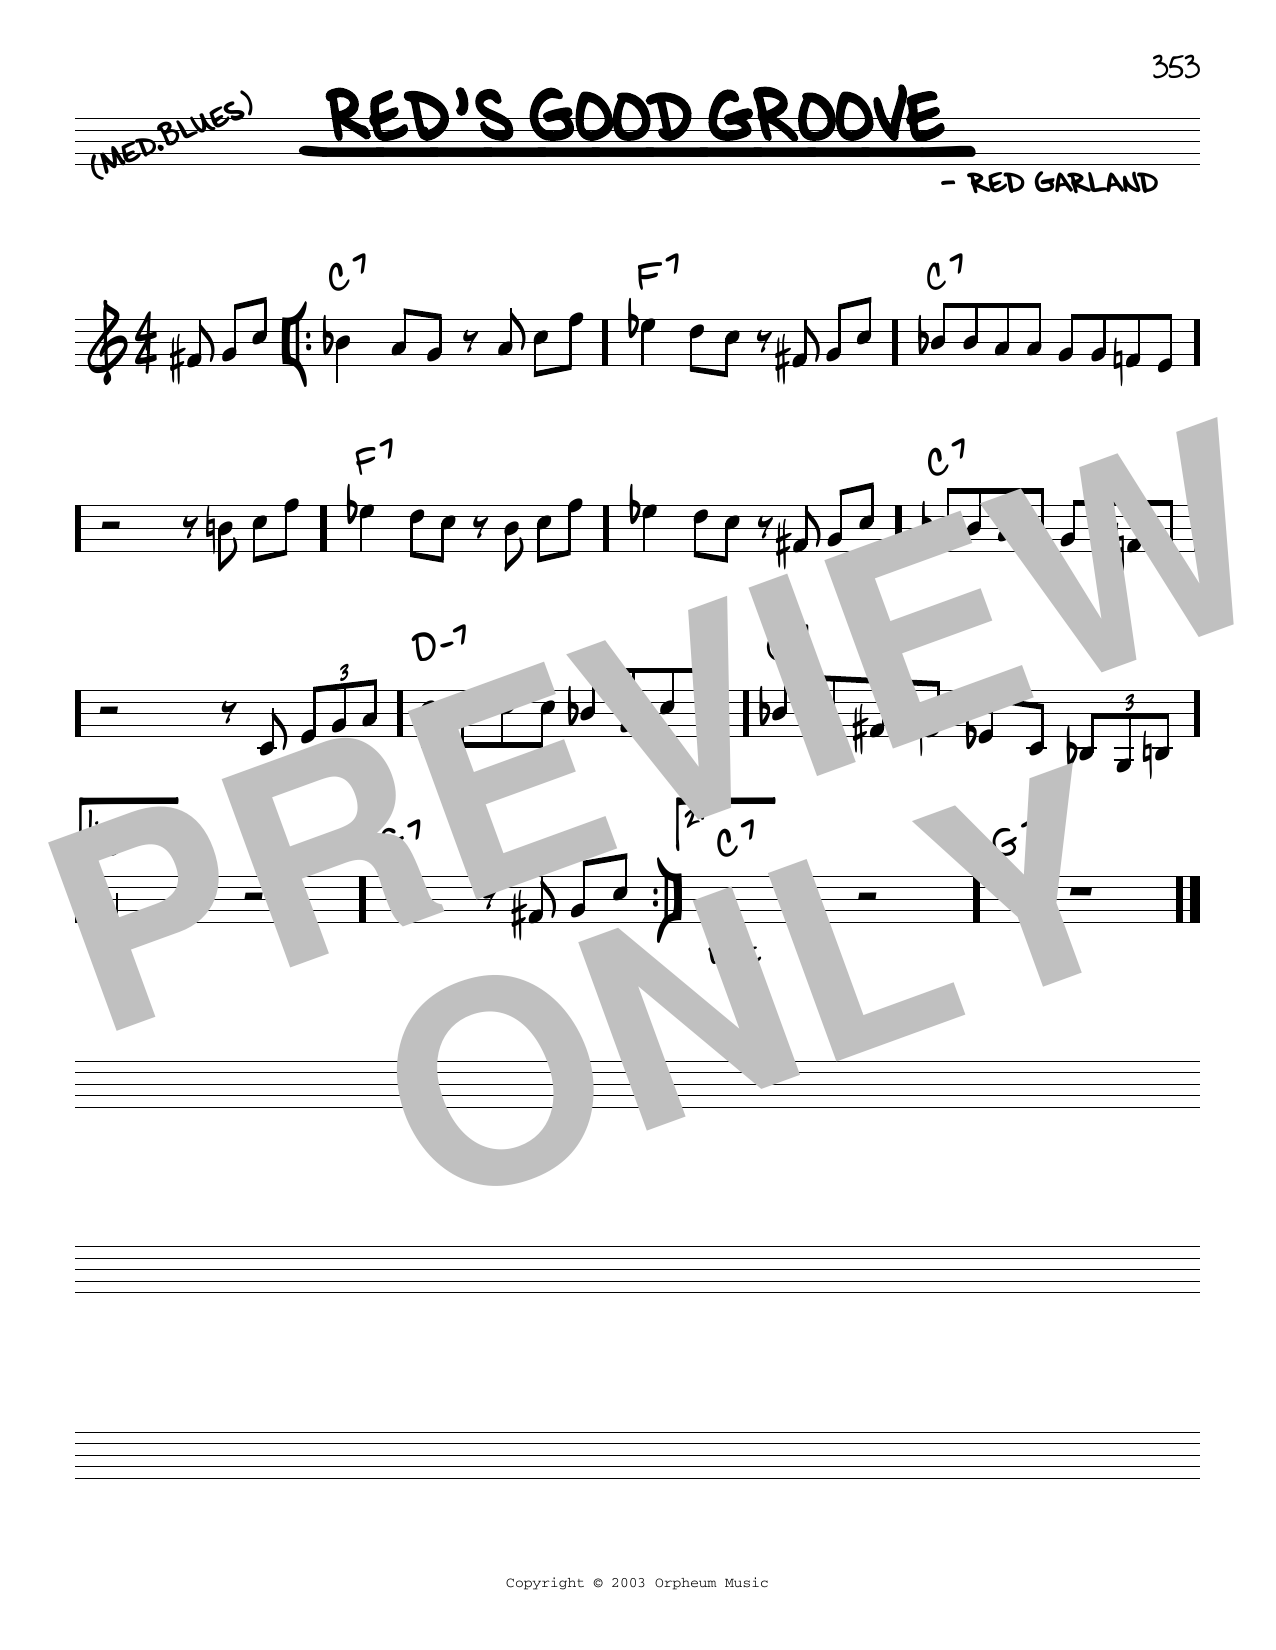 Red Garland Red's Good Groove sheet music notes and chords. Download Printable PDF.